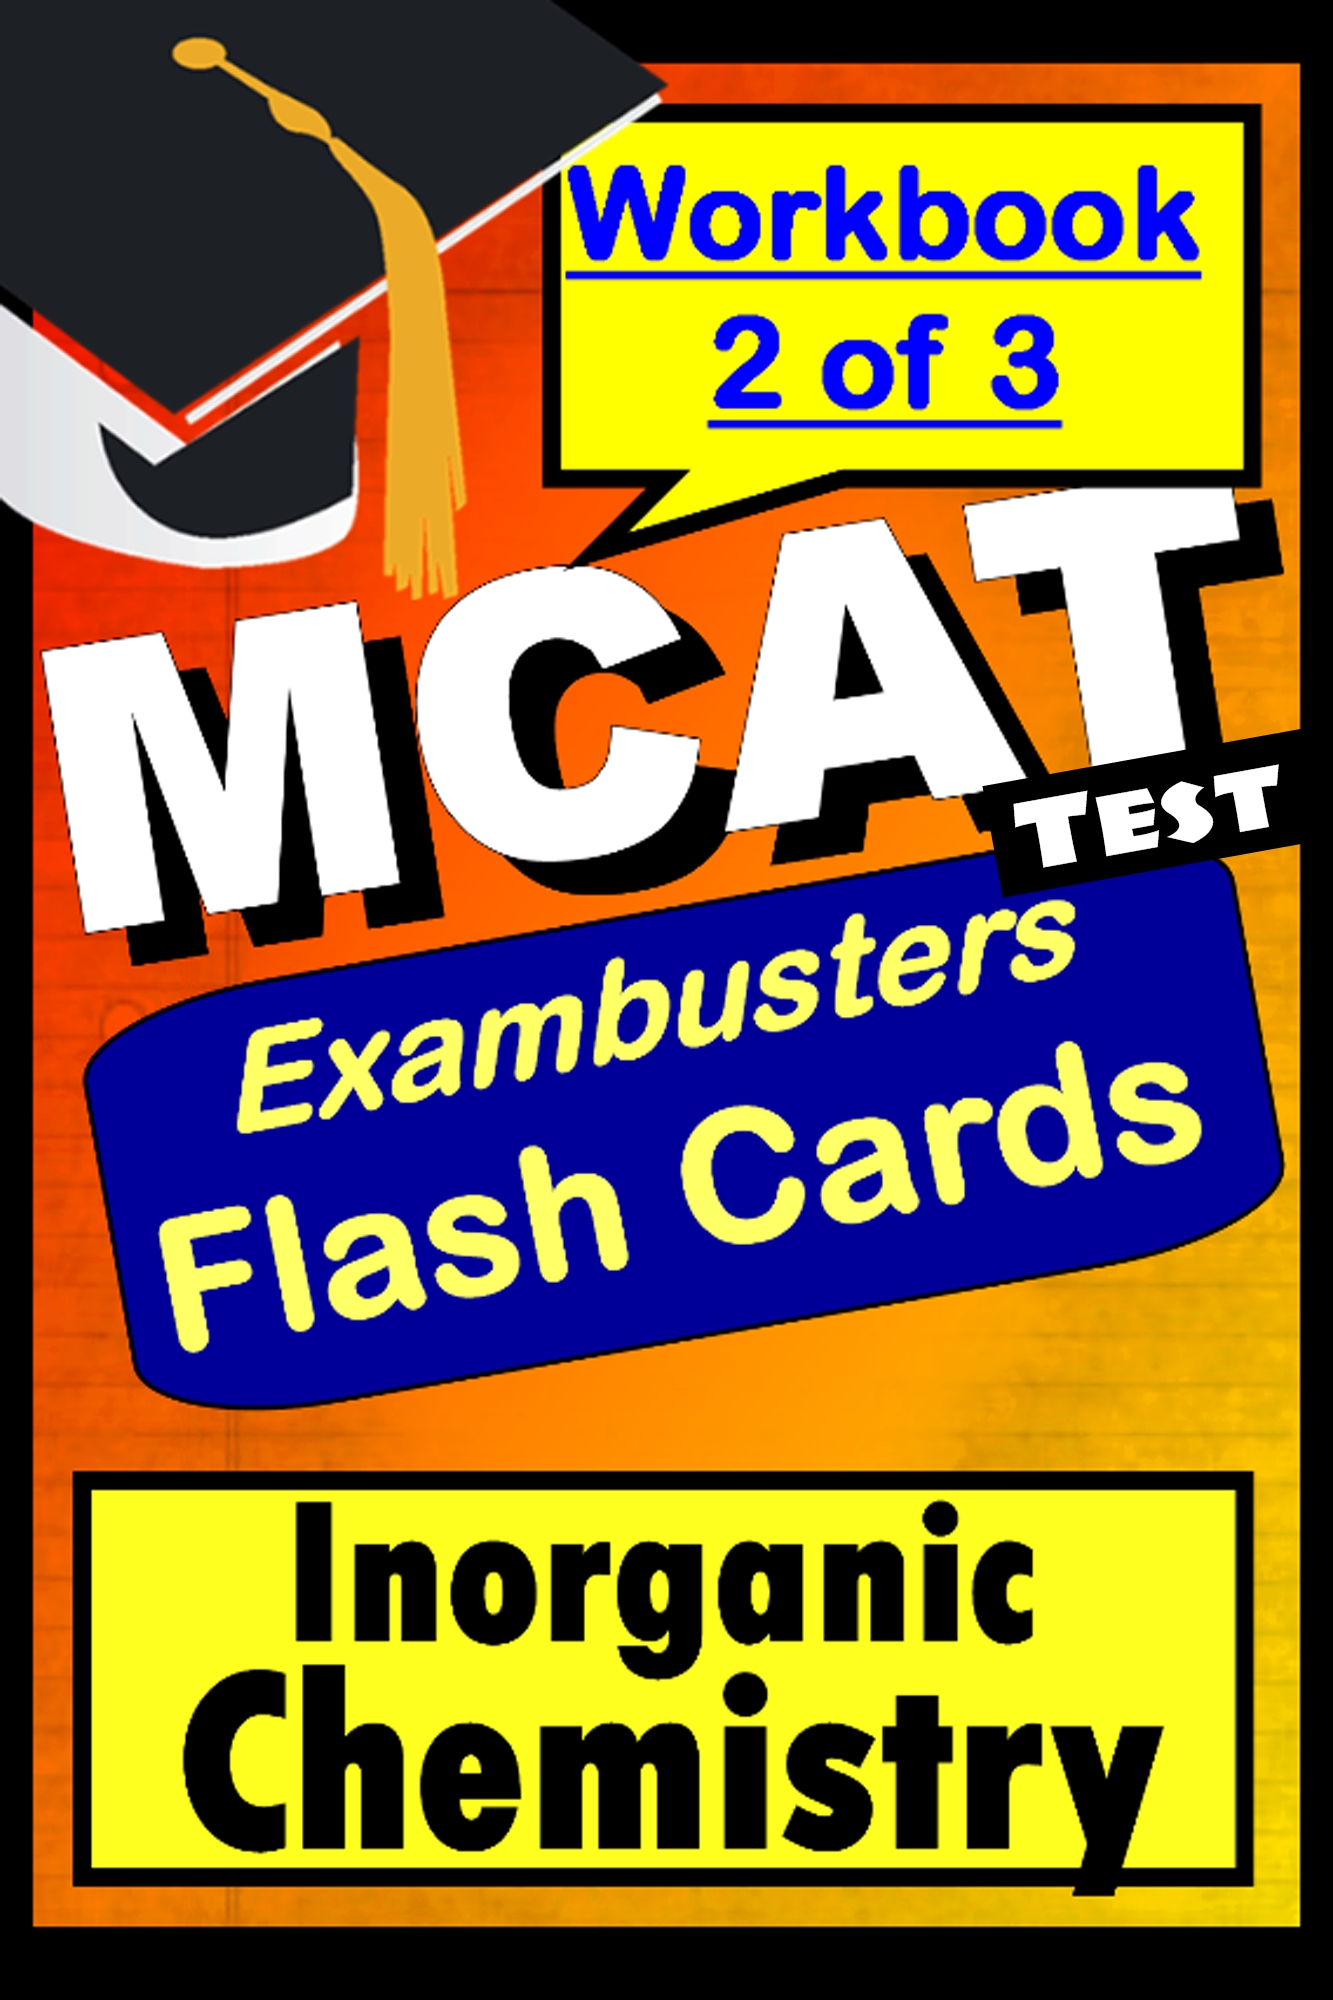 MCAT Test Inorganic Chemistry--Exambusters Flashcards--Workbook 2 of 3